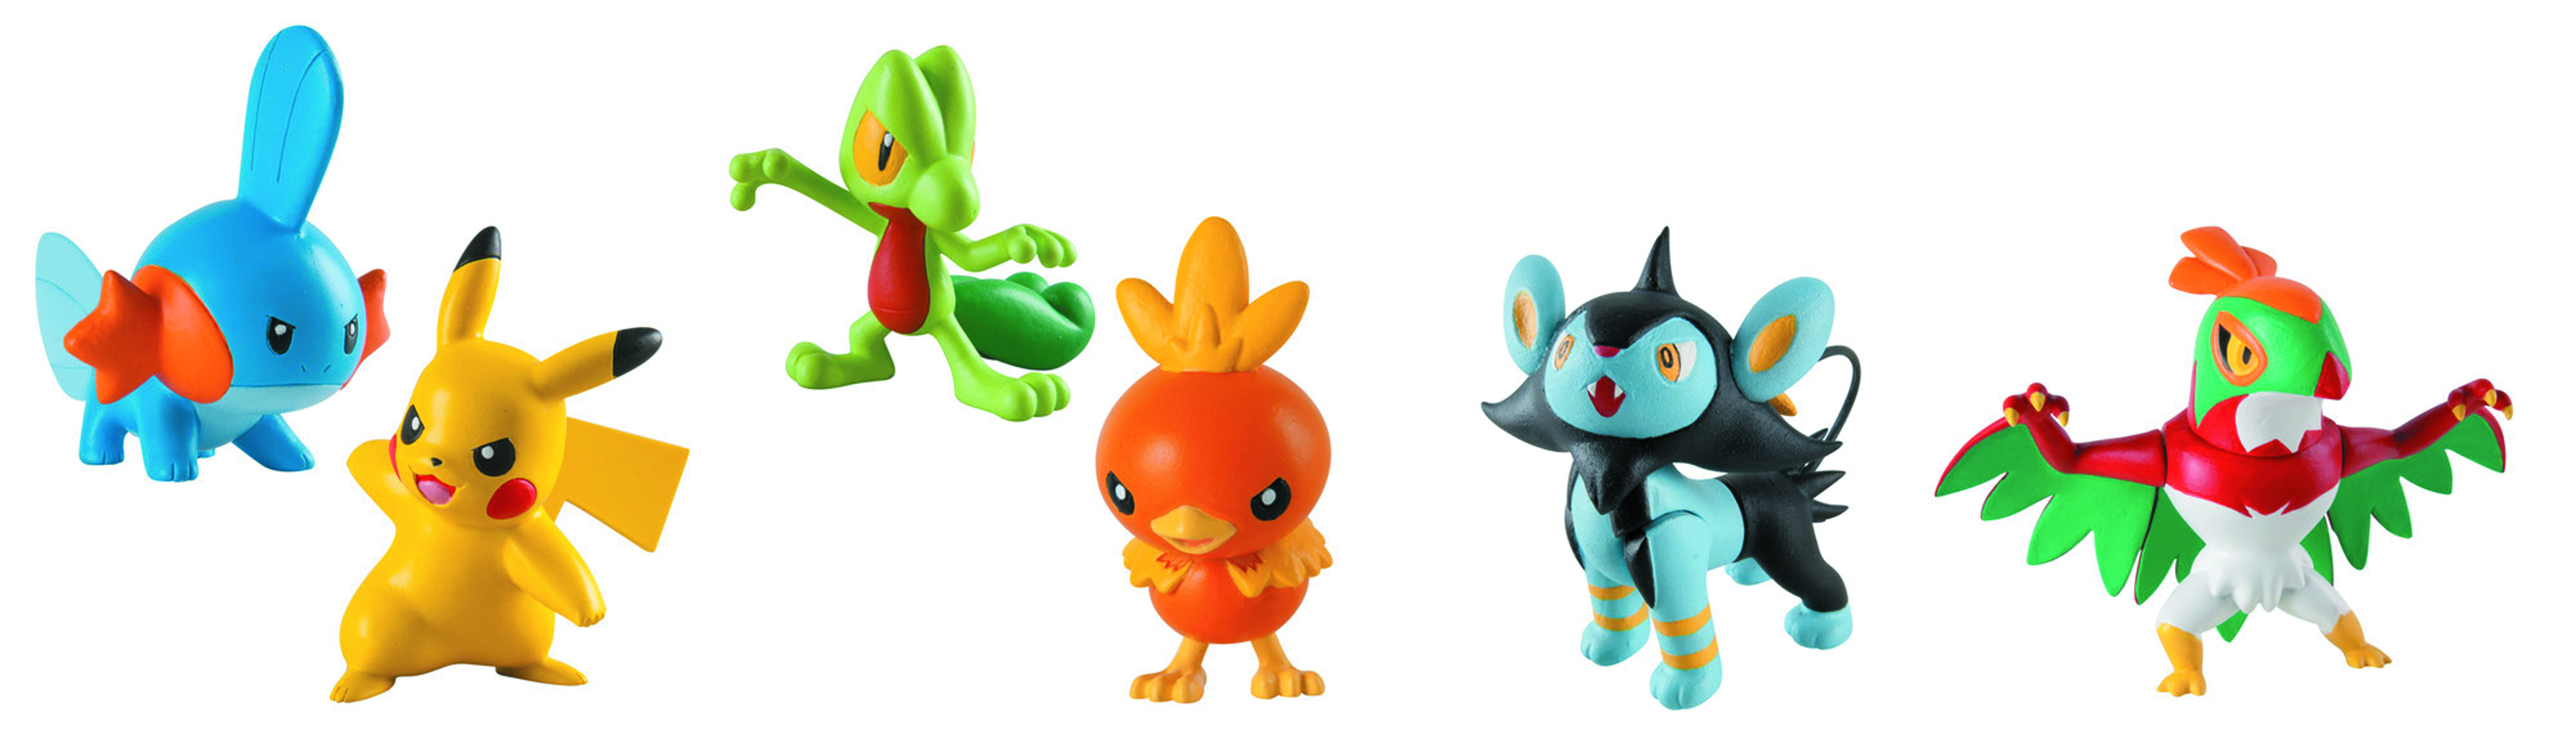 POKEMON BATTLE FIGURES ASST 201501